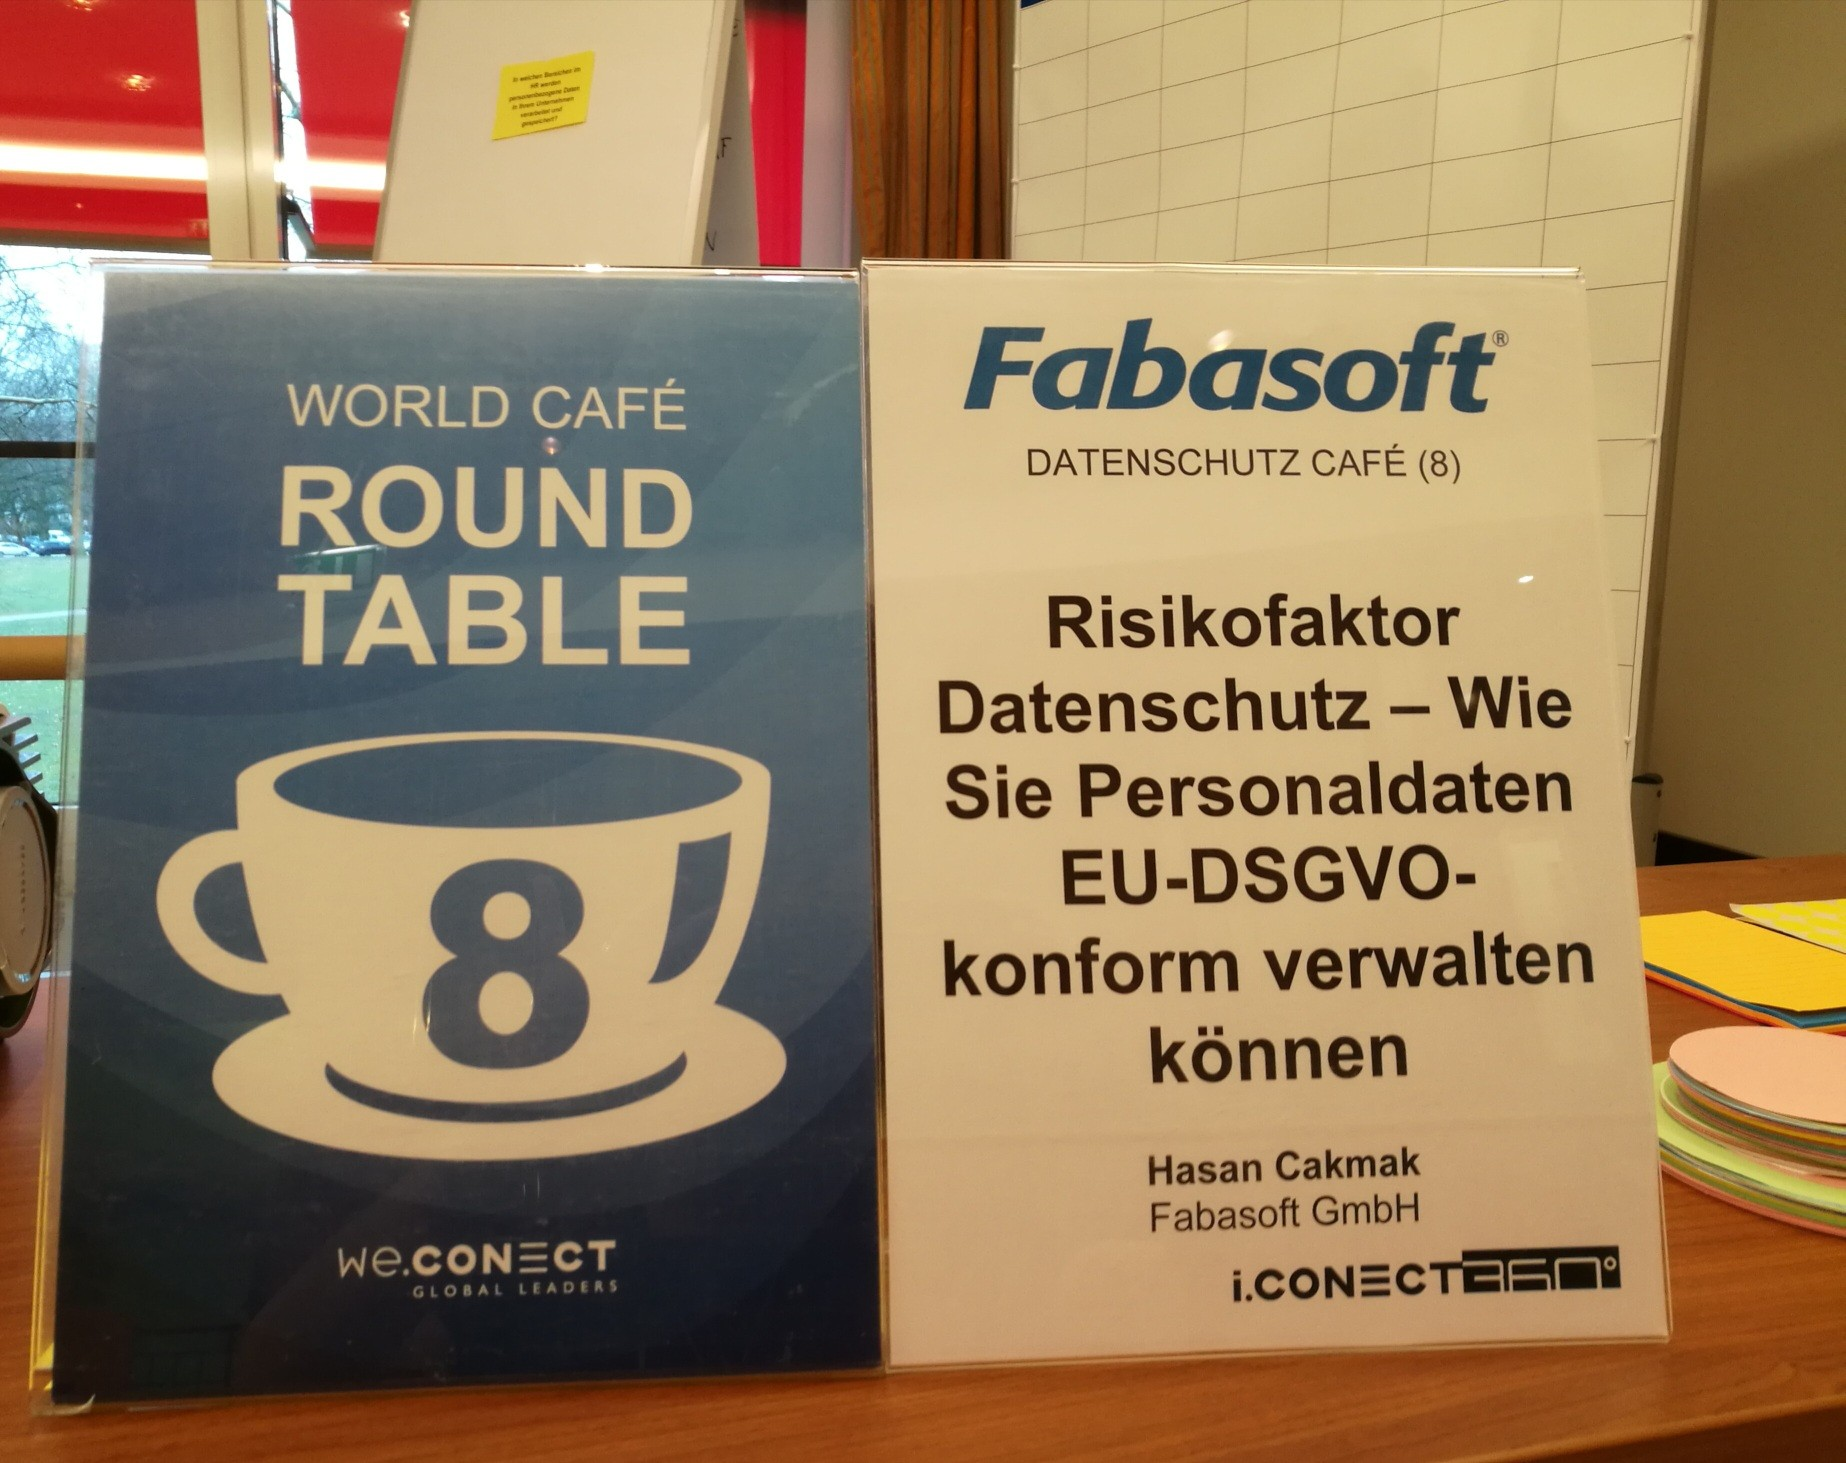 Fabasoft World Café auf der Rethink! HR Tech 2018 in Hamburg